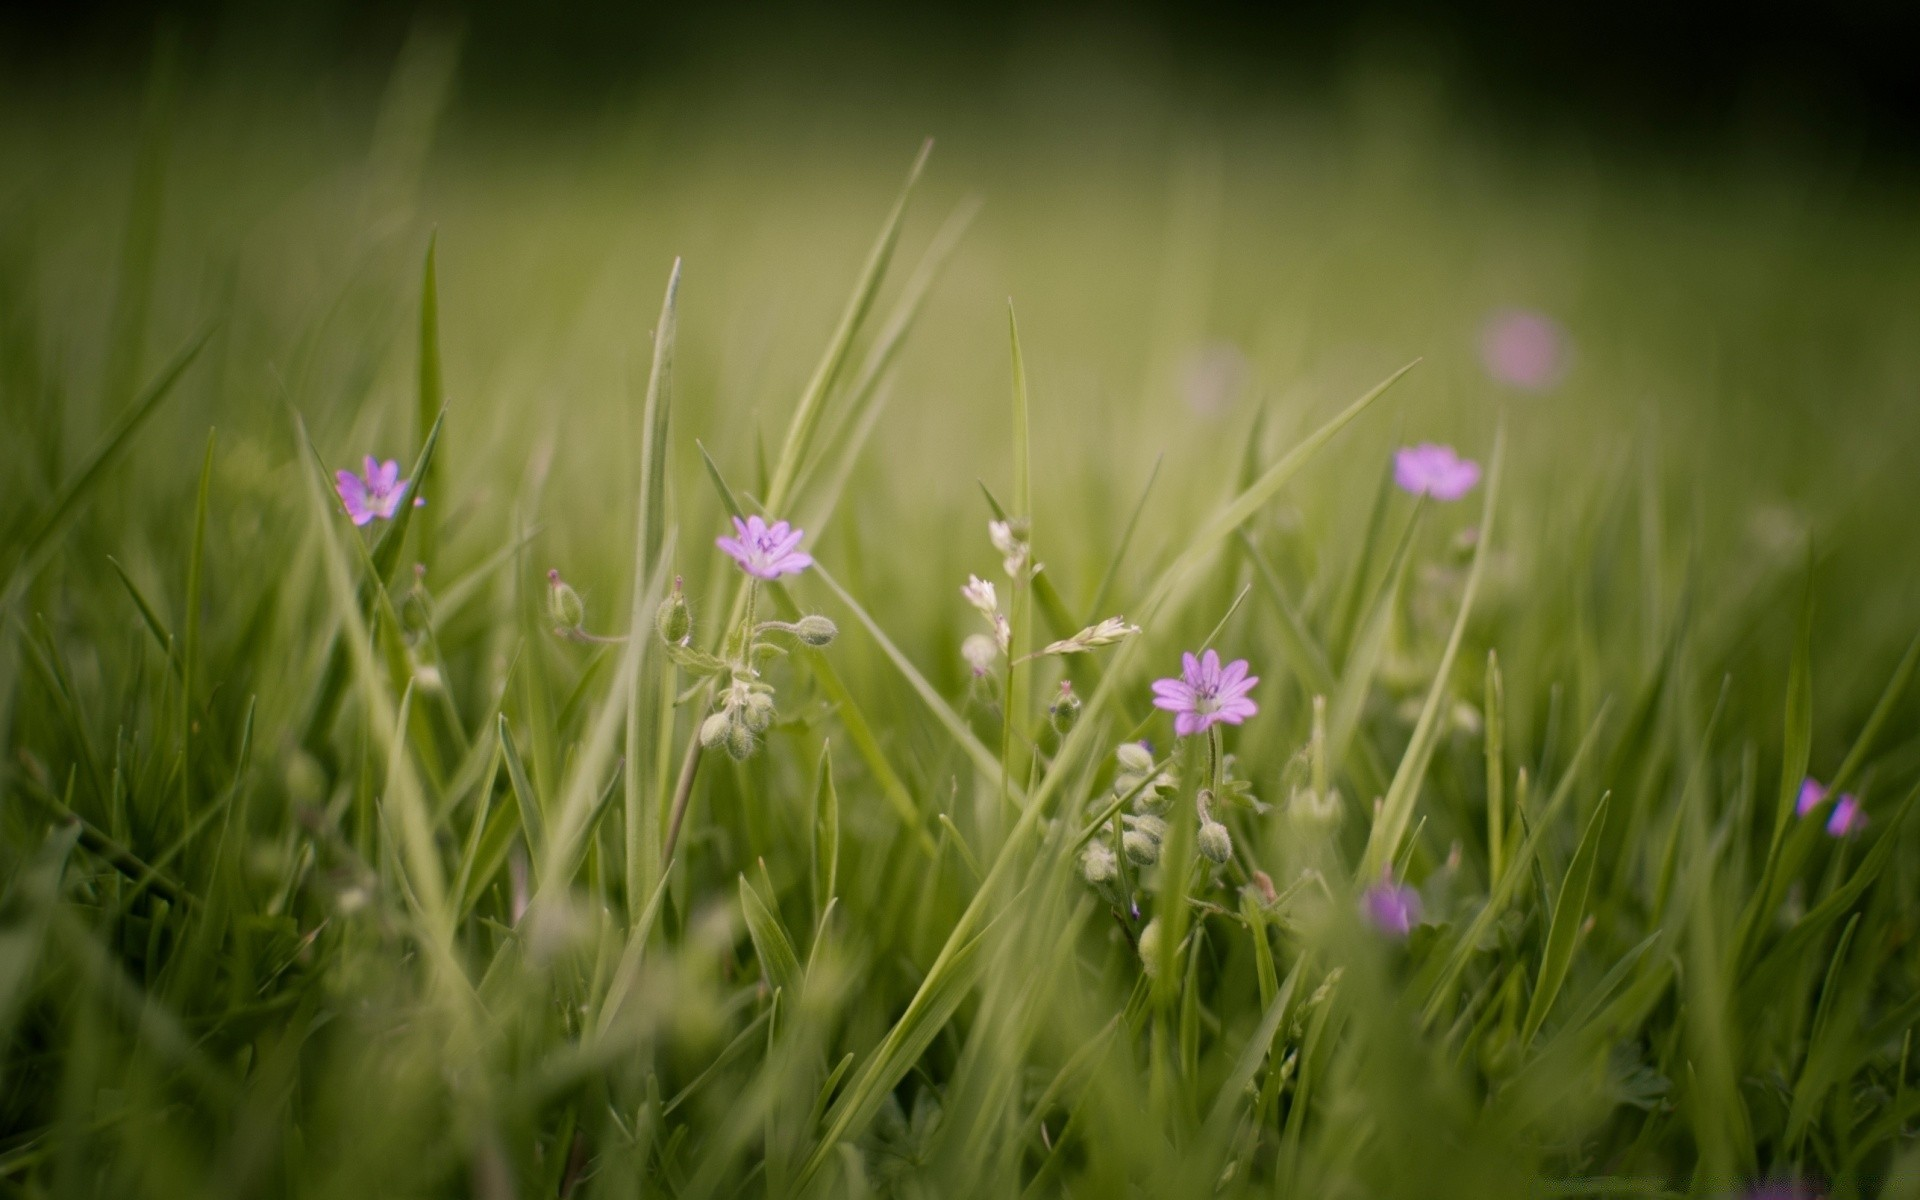 flowers grass nature field flower hayfield summer sun rural garden fair weather flora growth environment outdoors lawn season dof leaf